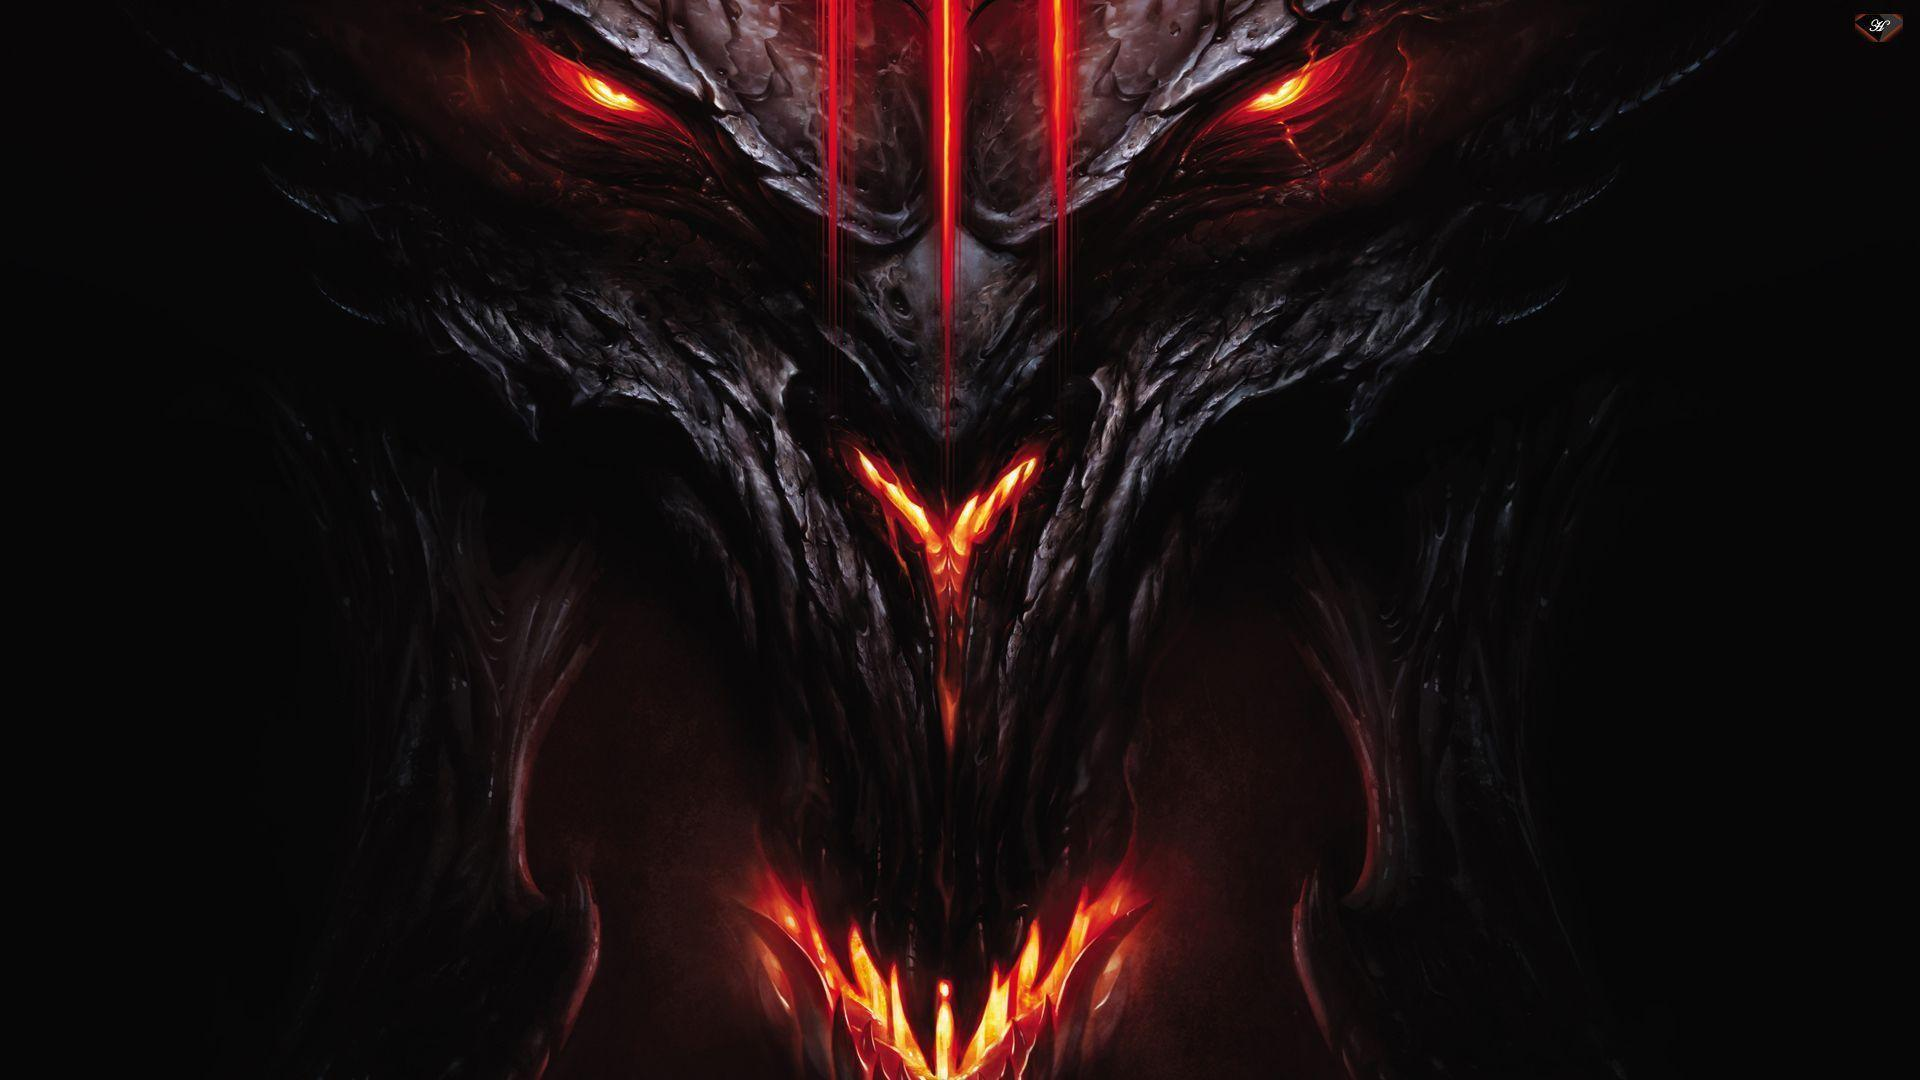 Diablo 3 Wallpapers 1080p Wallpaper Cave